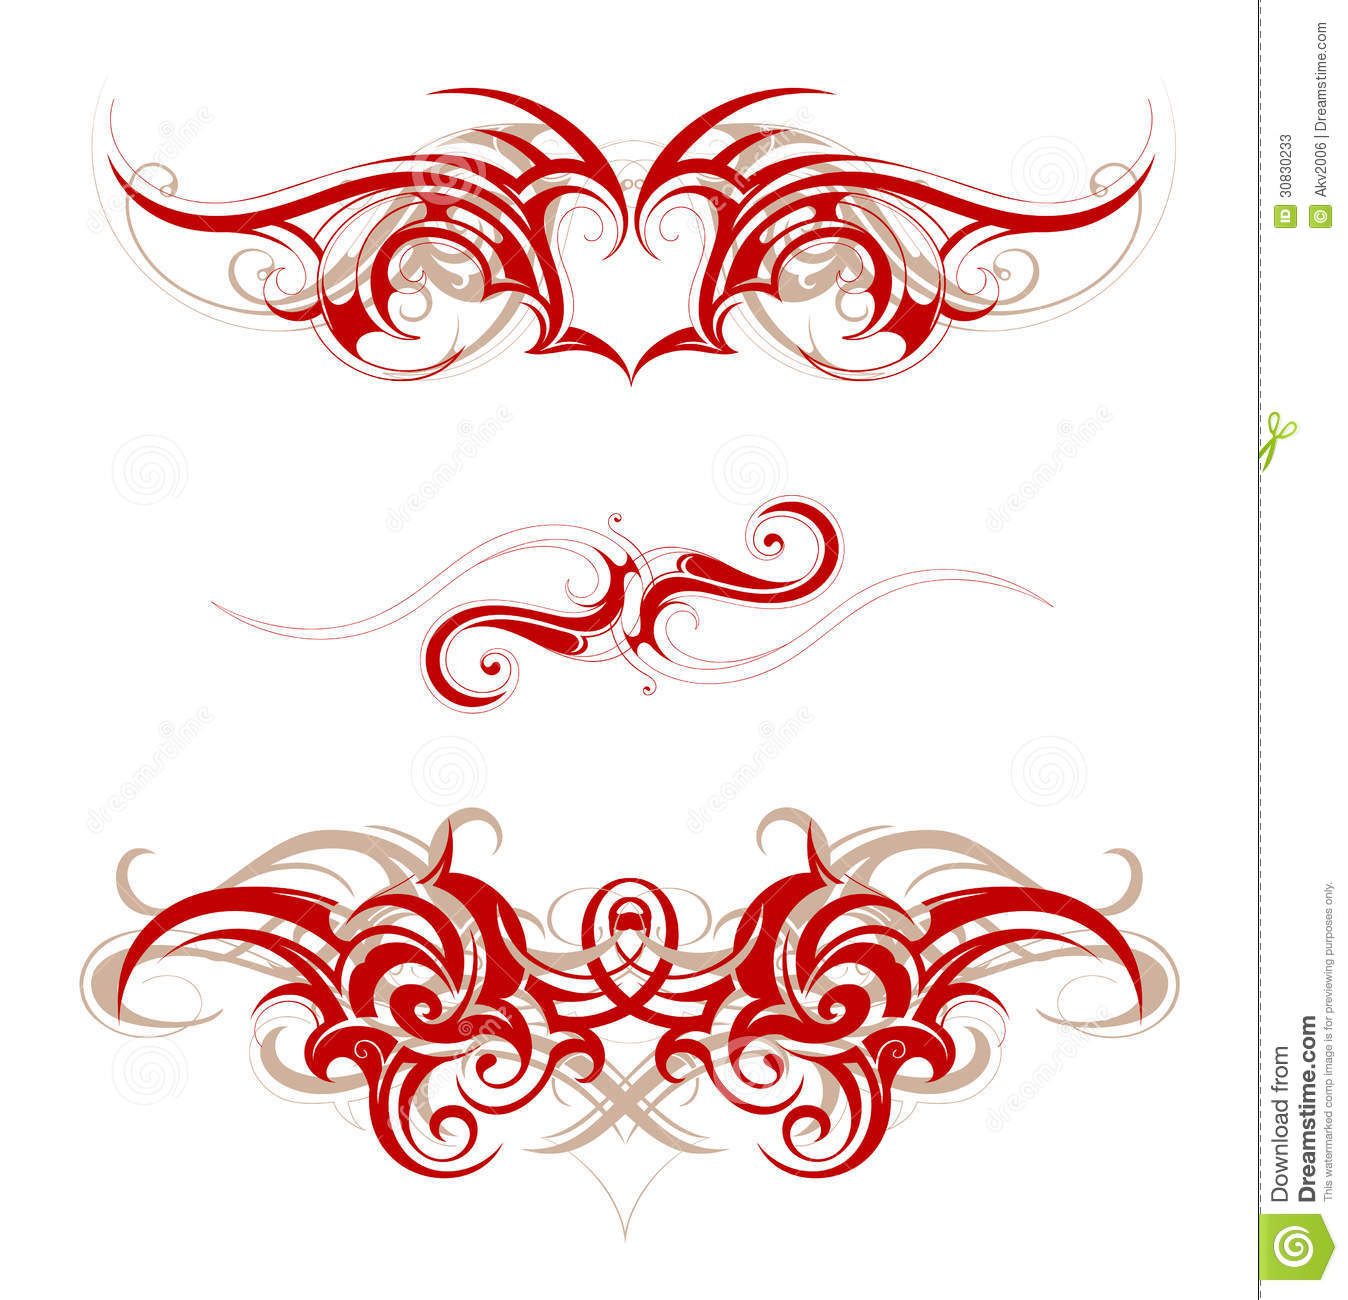 tribal tattoo stock vector image of swirls scroll wave 30830233. Black Bedroom Furniture Sets. Home Design Ideas